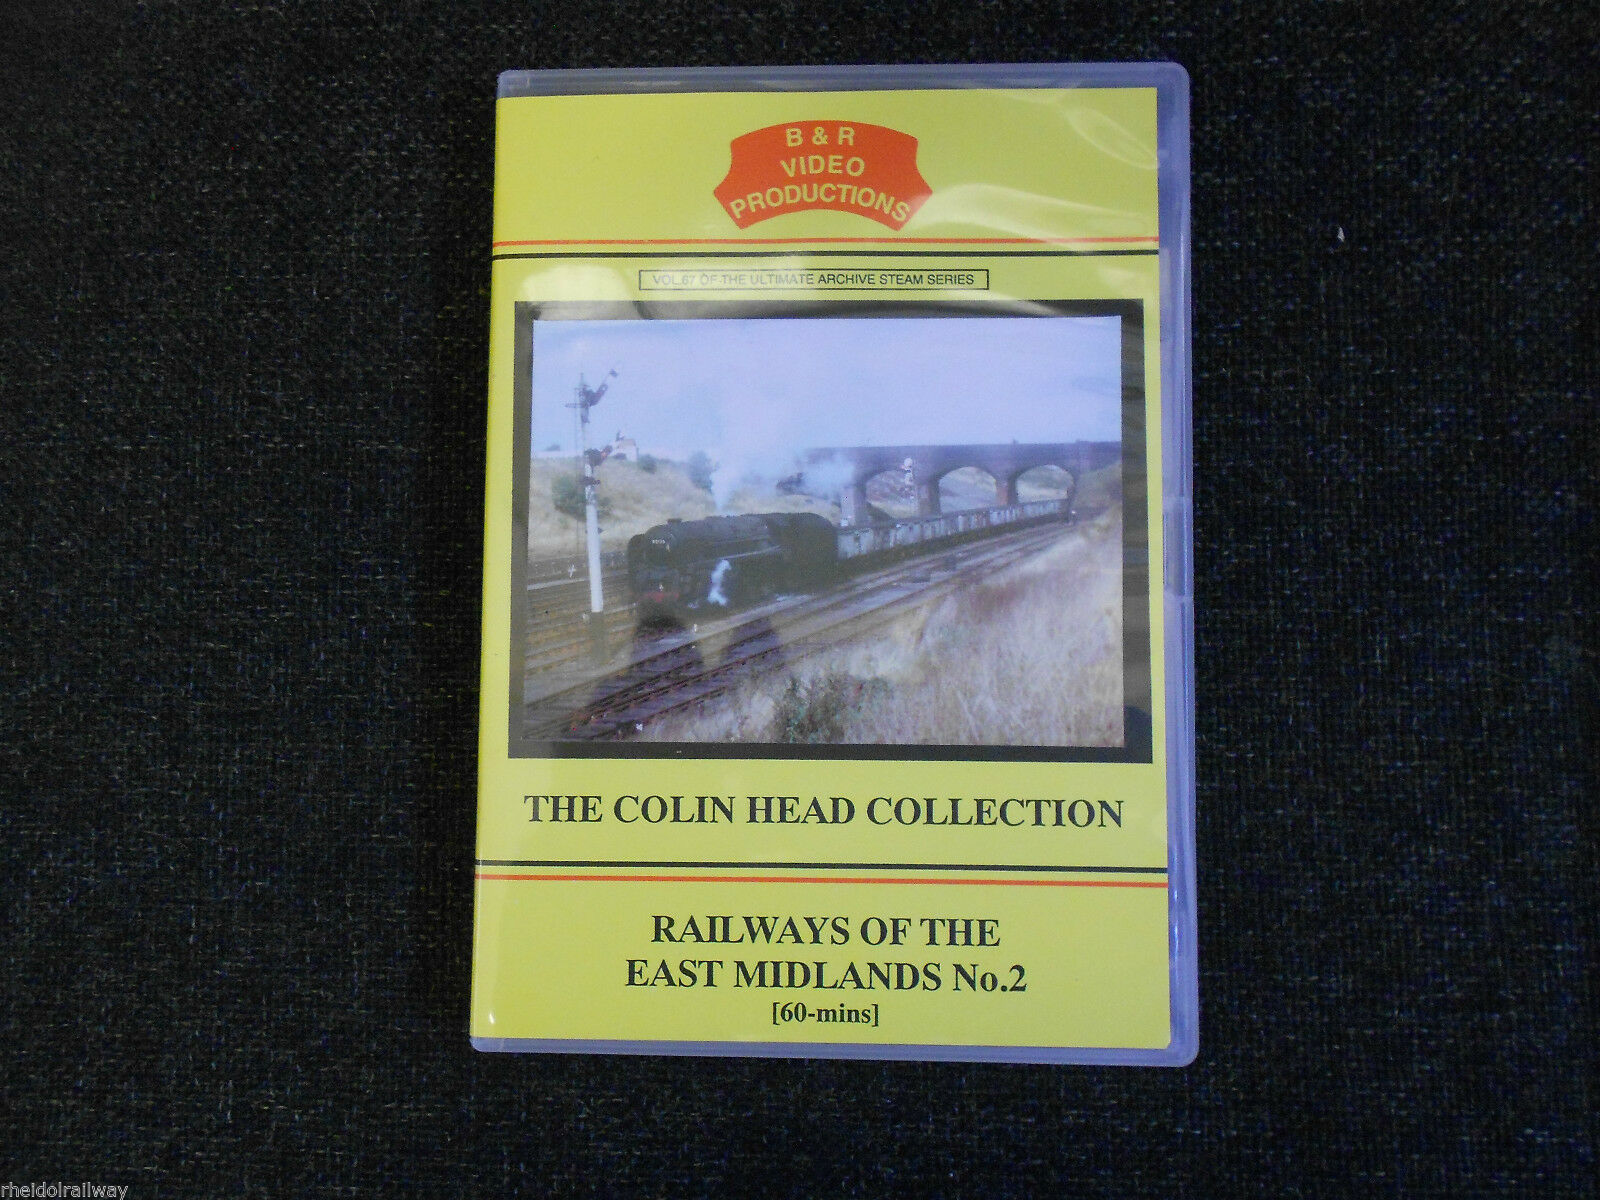 Wellingborough, Kettering, Railways of the East Midlands No.2 B&R Vol 67 DVD - The Vale of Rheidol Railway